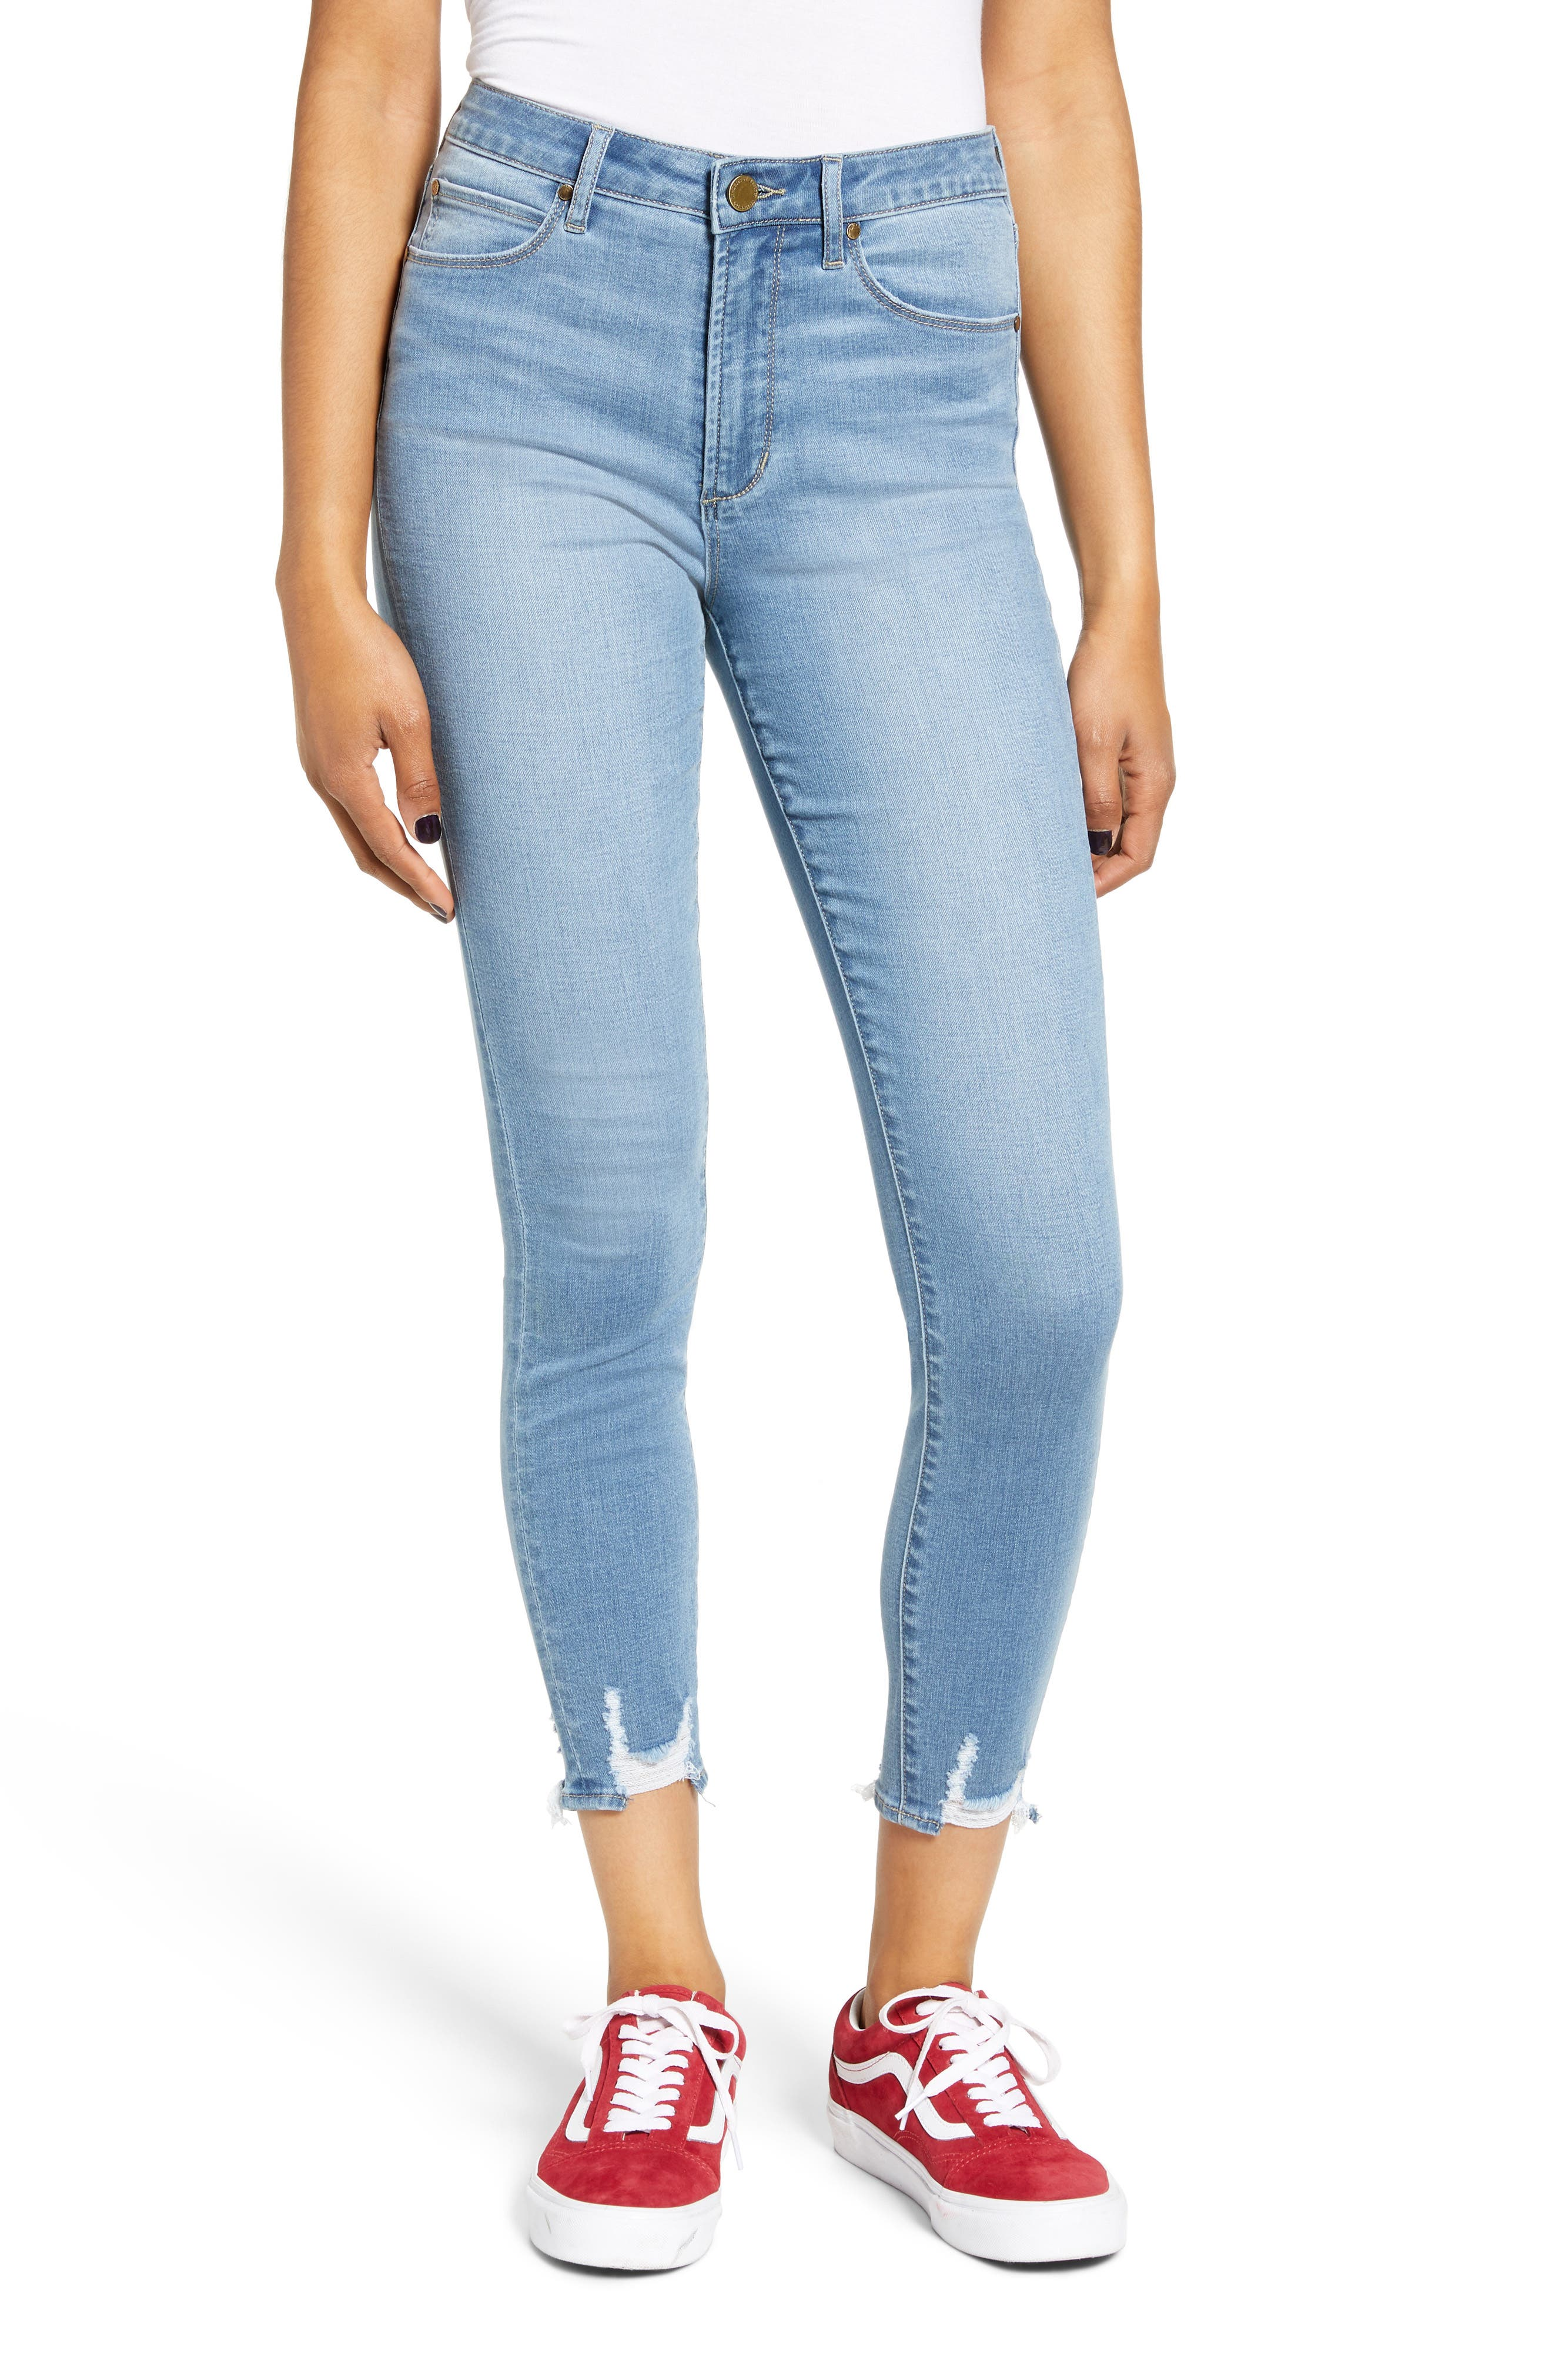 Articles of Society Heather High Waist Distressed Hem Crop Skinny Jeans (Echo Park)